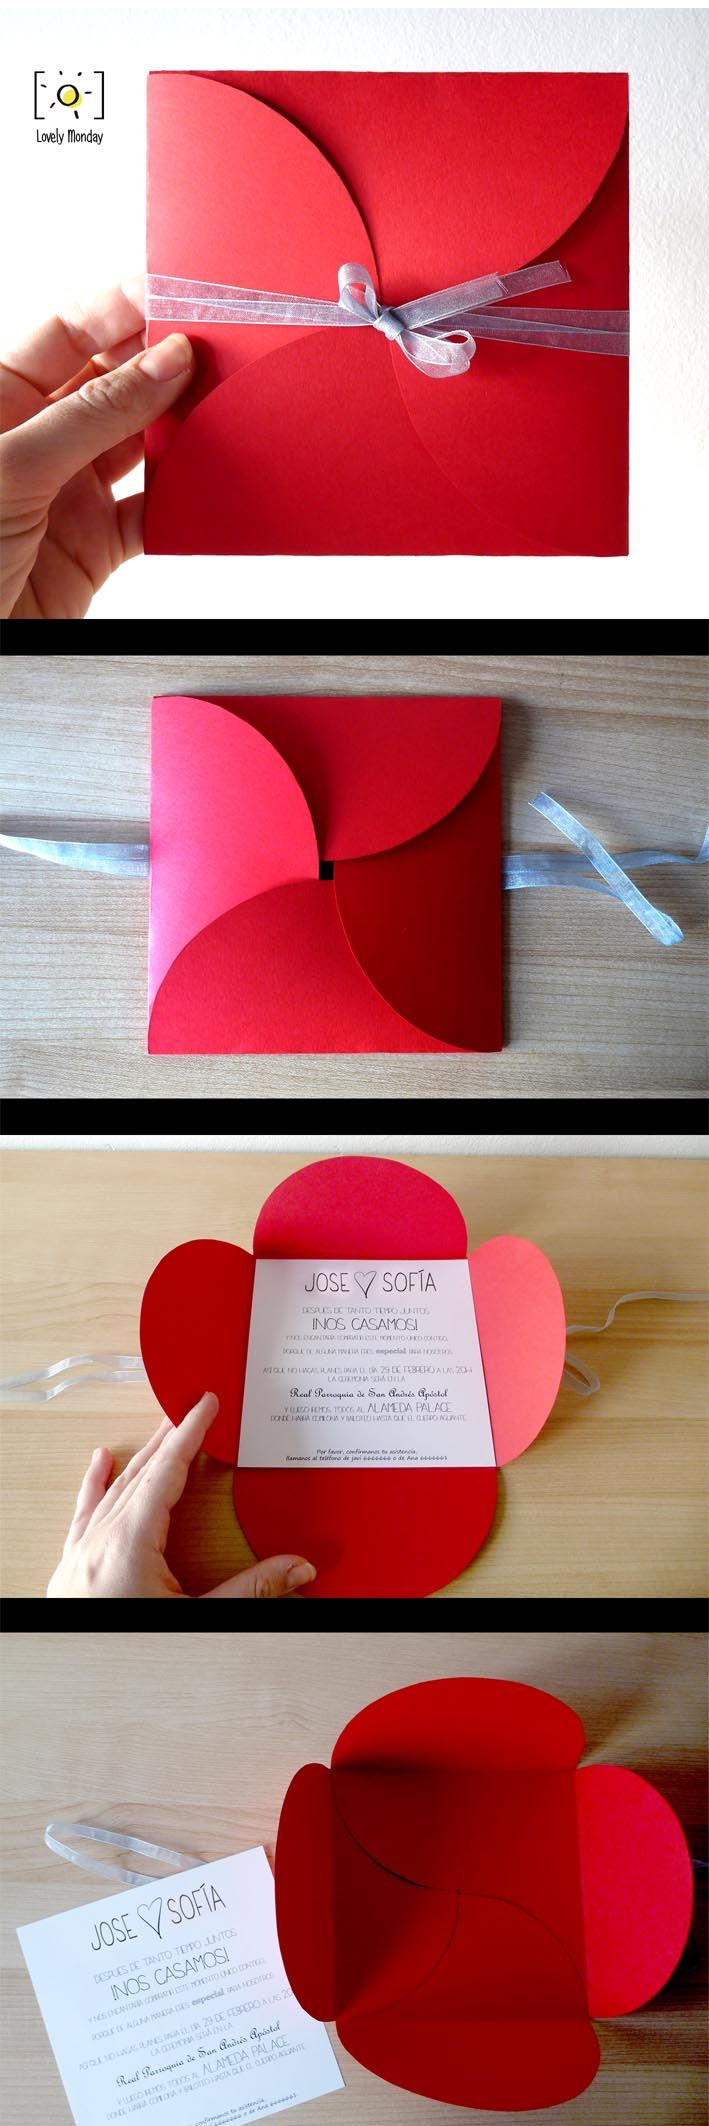 81 best Invitaciones images on Pinterest | Invitations, Weddings and ...